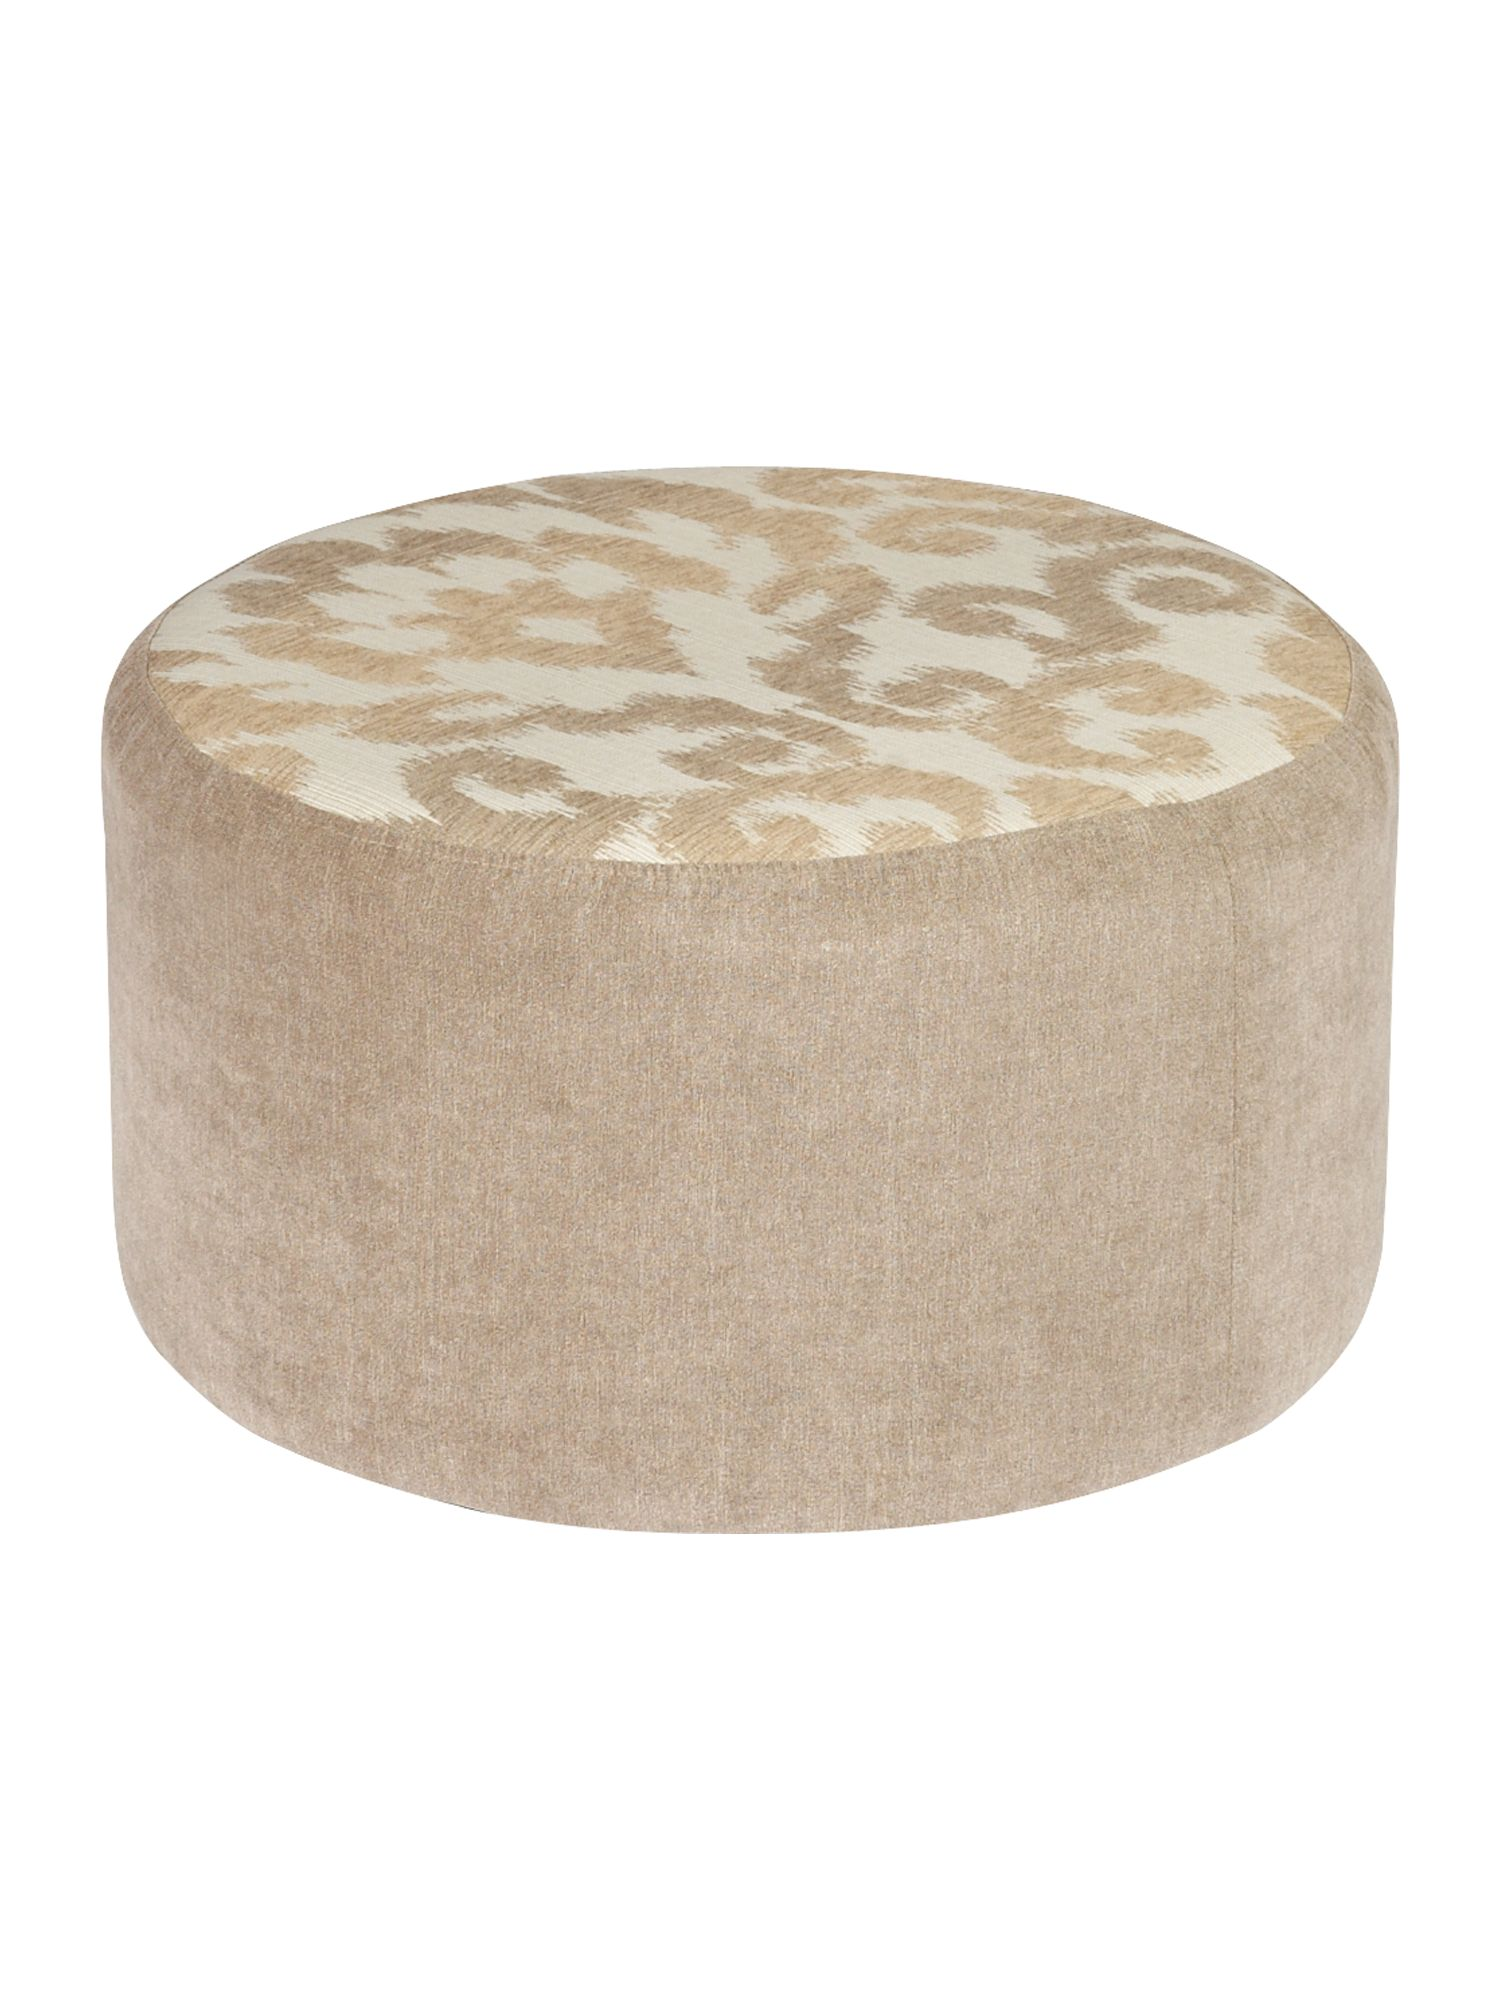 Cheshire Patterend Top Round Footstool